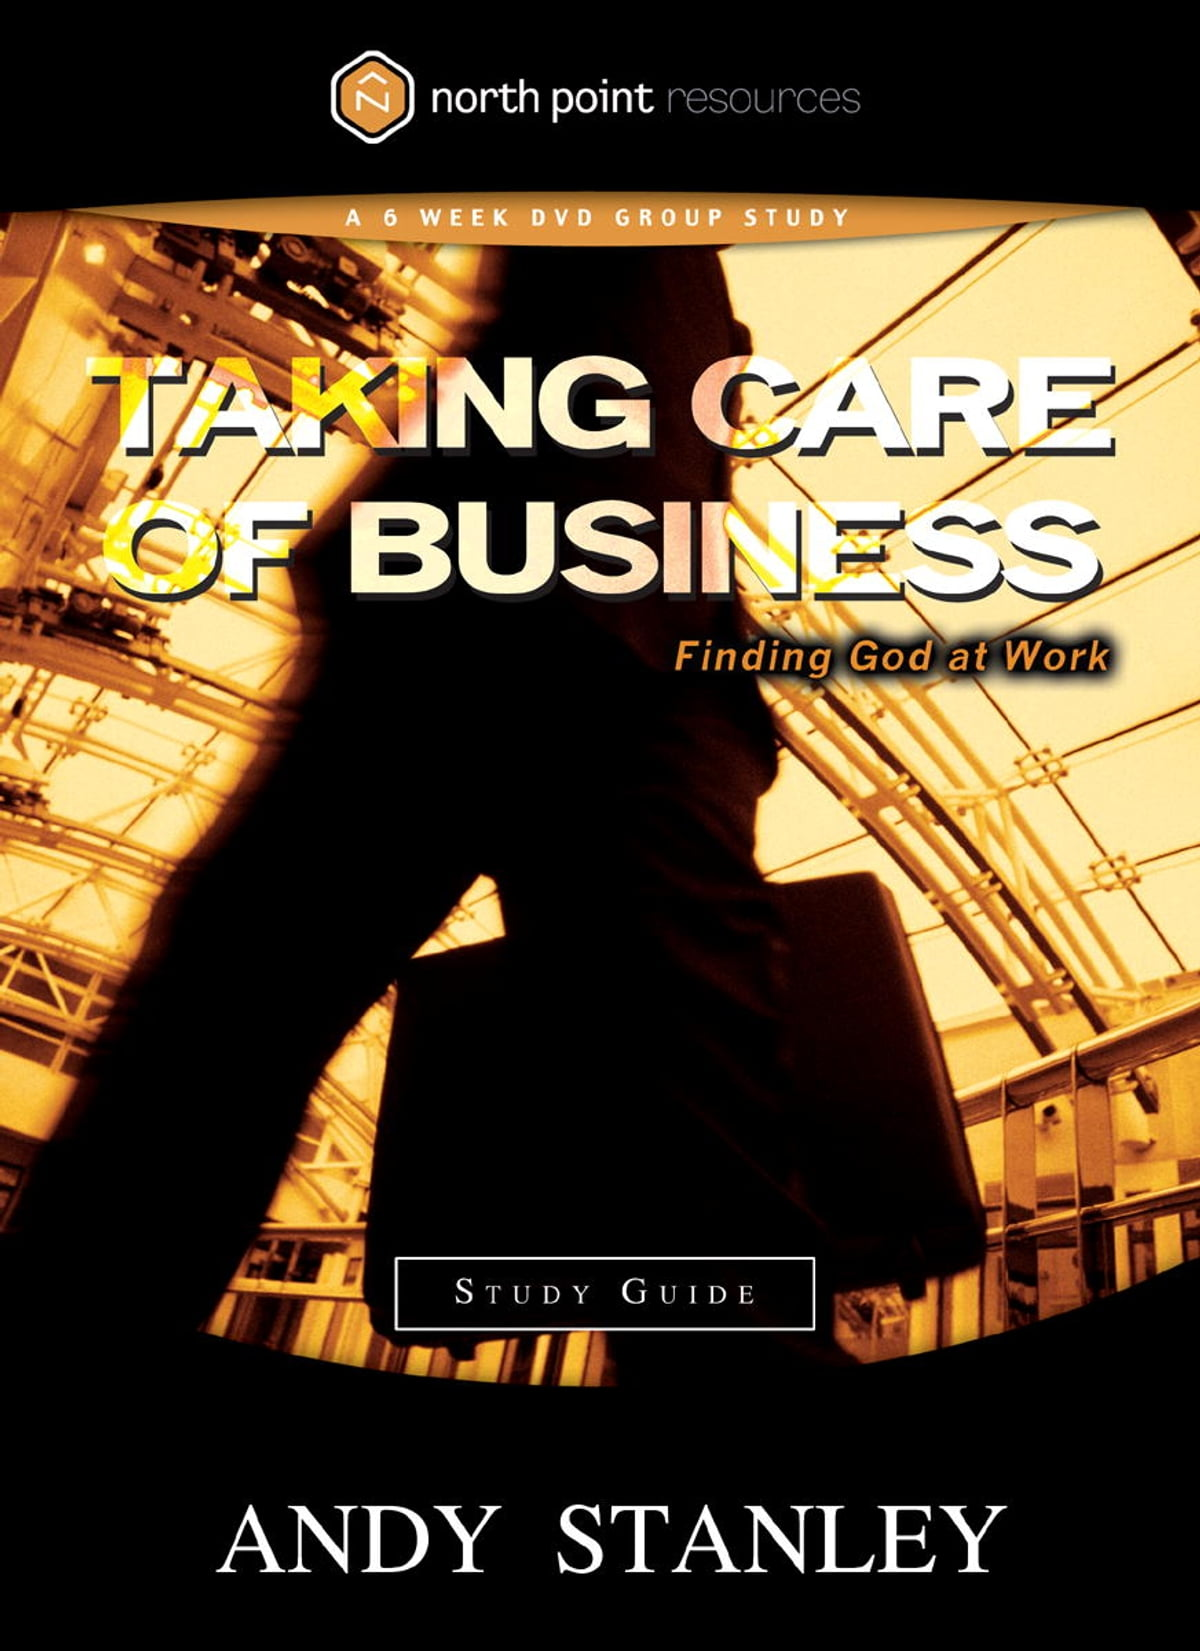 Taking Care of Business Study Guide eBook by Andy Stanley - 9780307563200 |  Rakuten Kobo